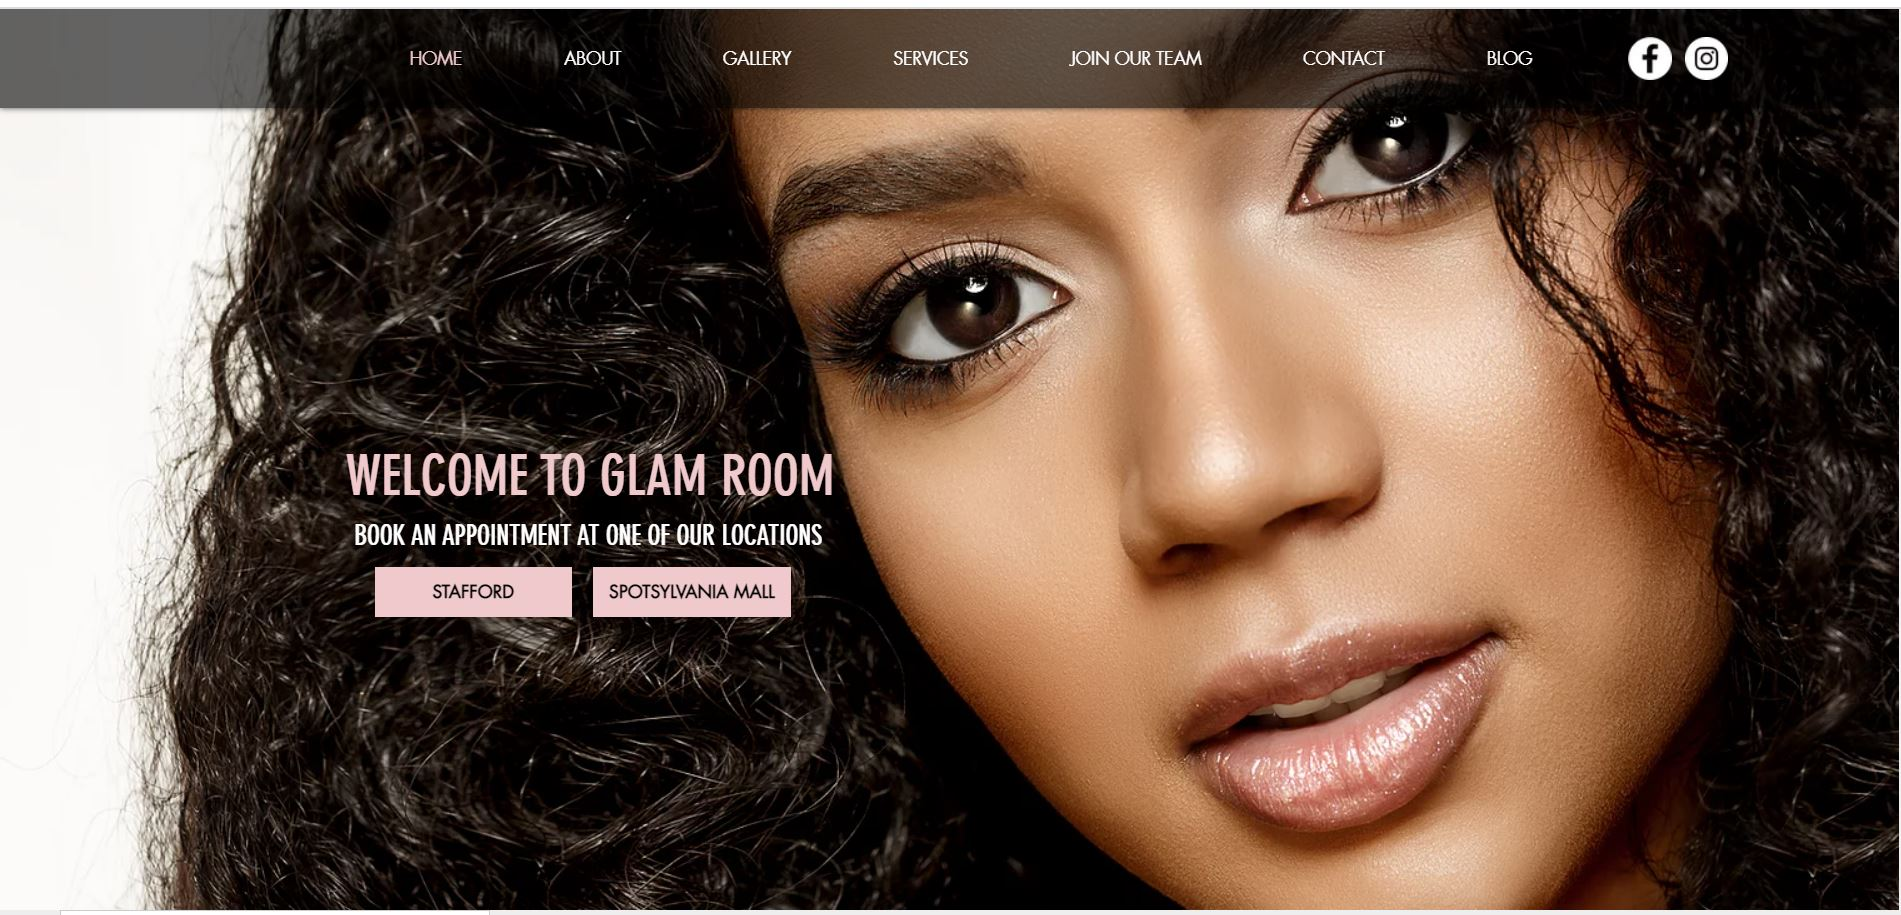 glamroom A luxury salon providing high end beauty services.